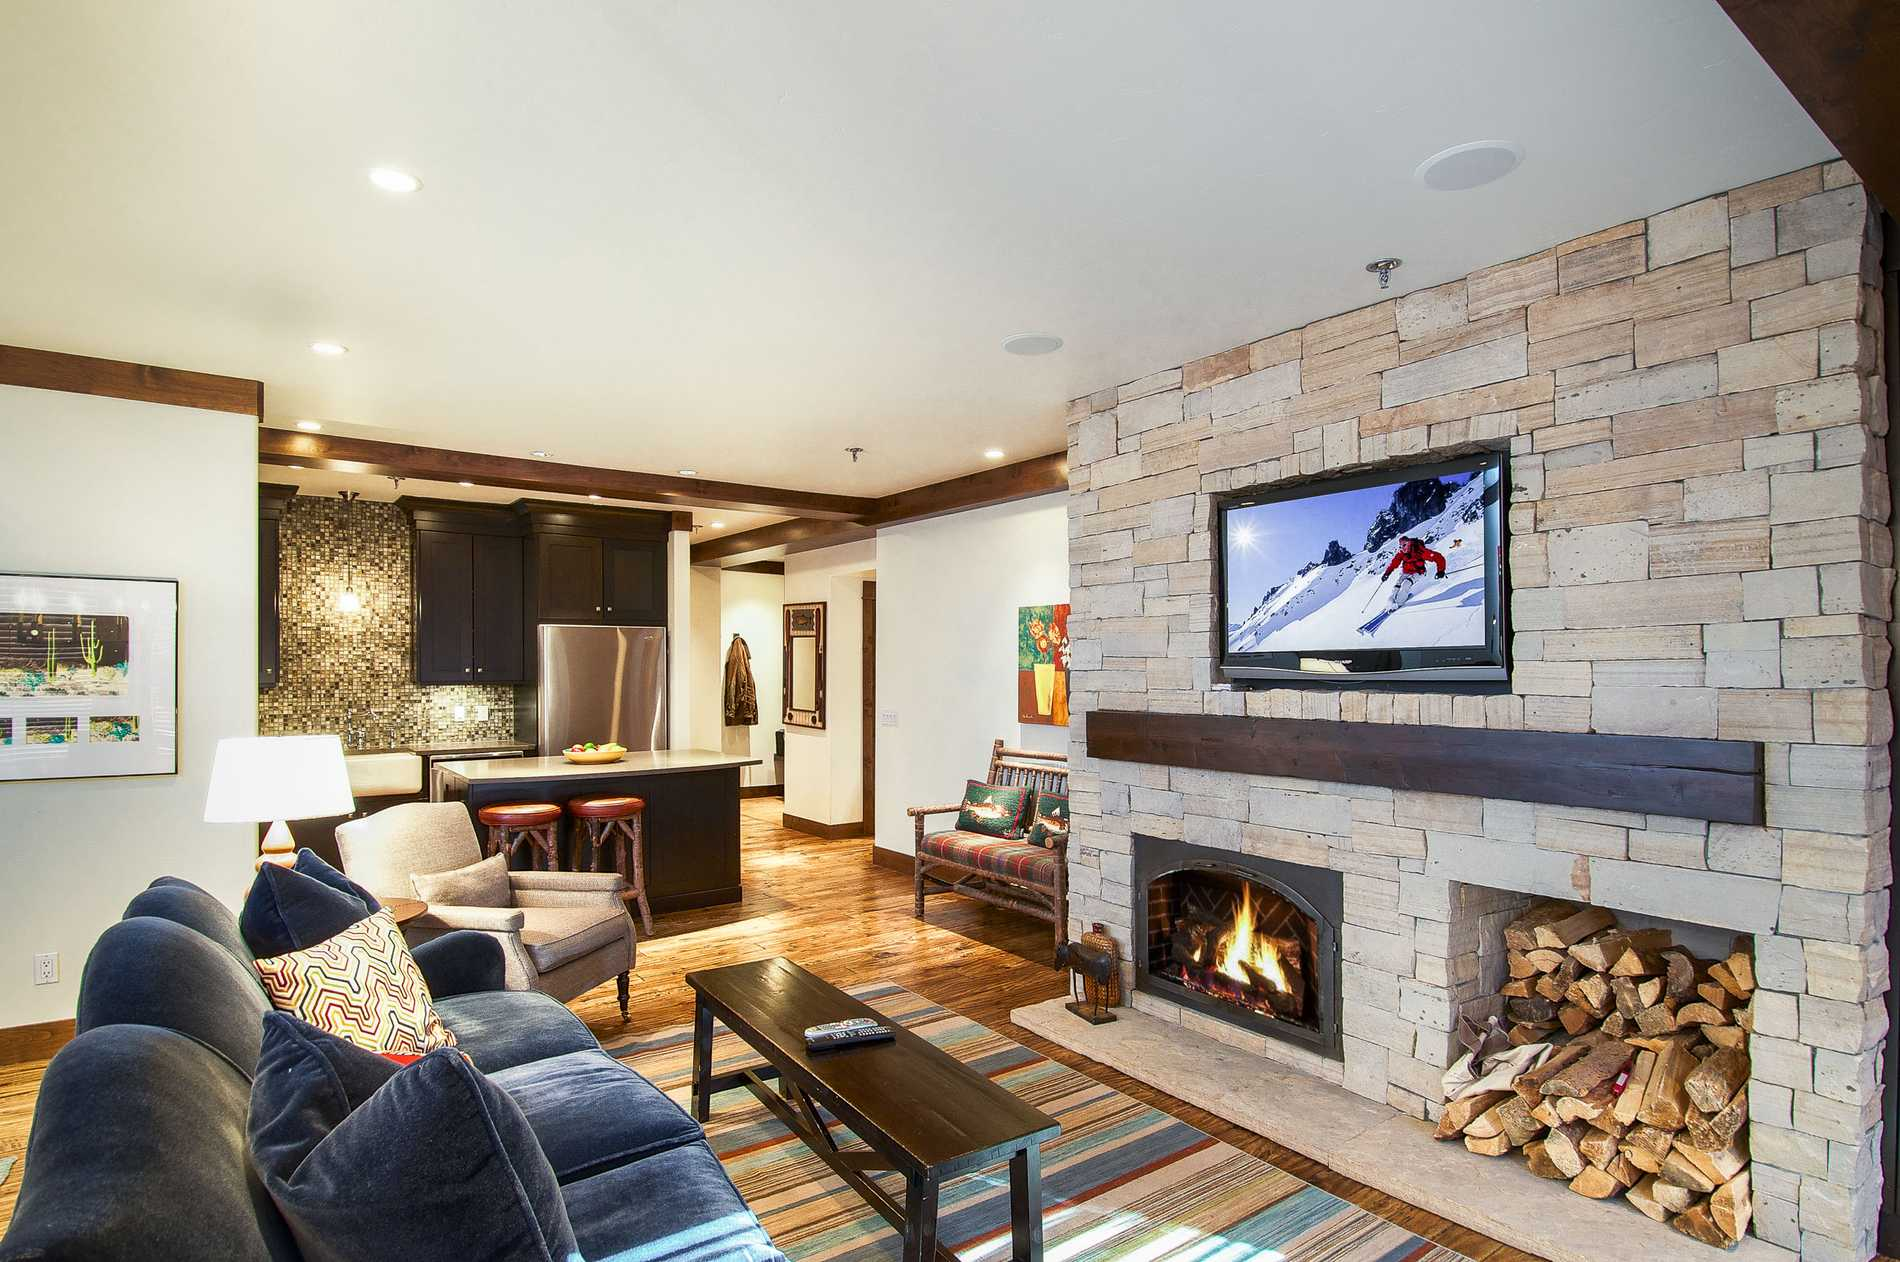 425 Wood Road, Unit: 20 Snowmass Village Photo 1